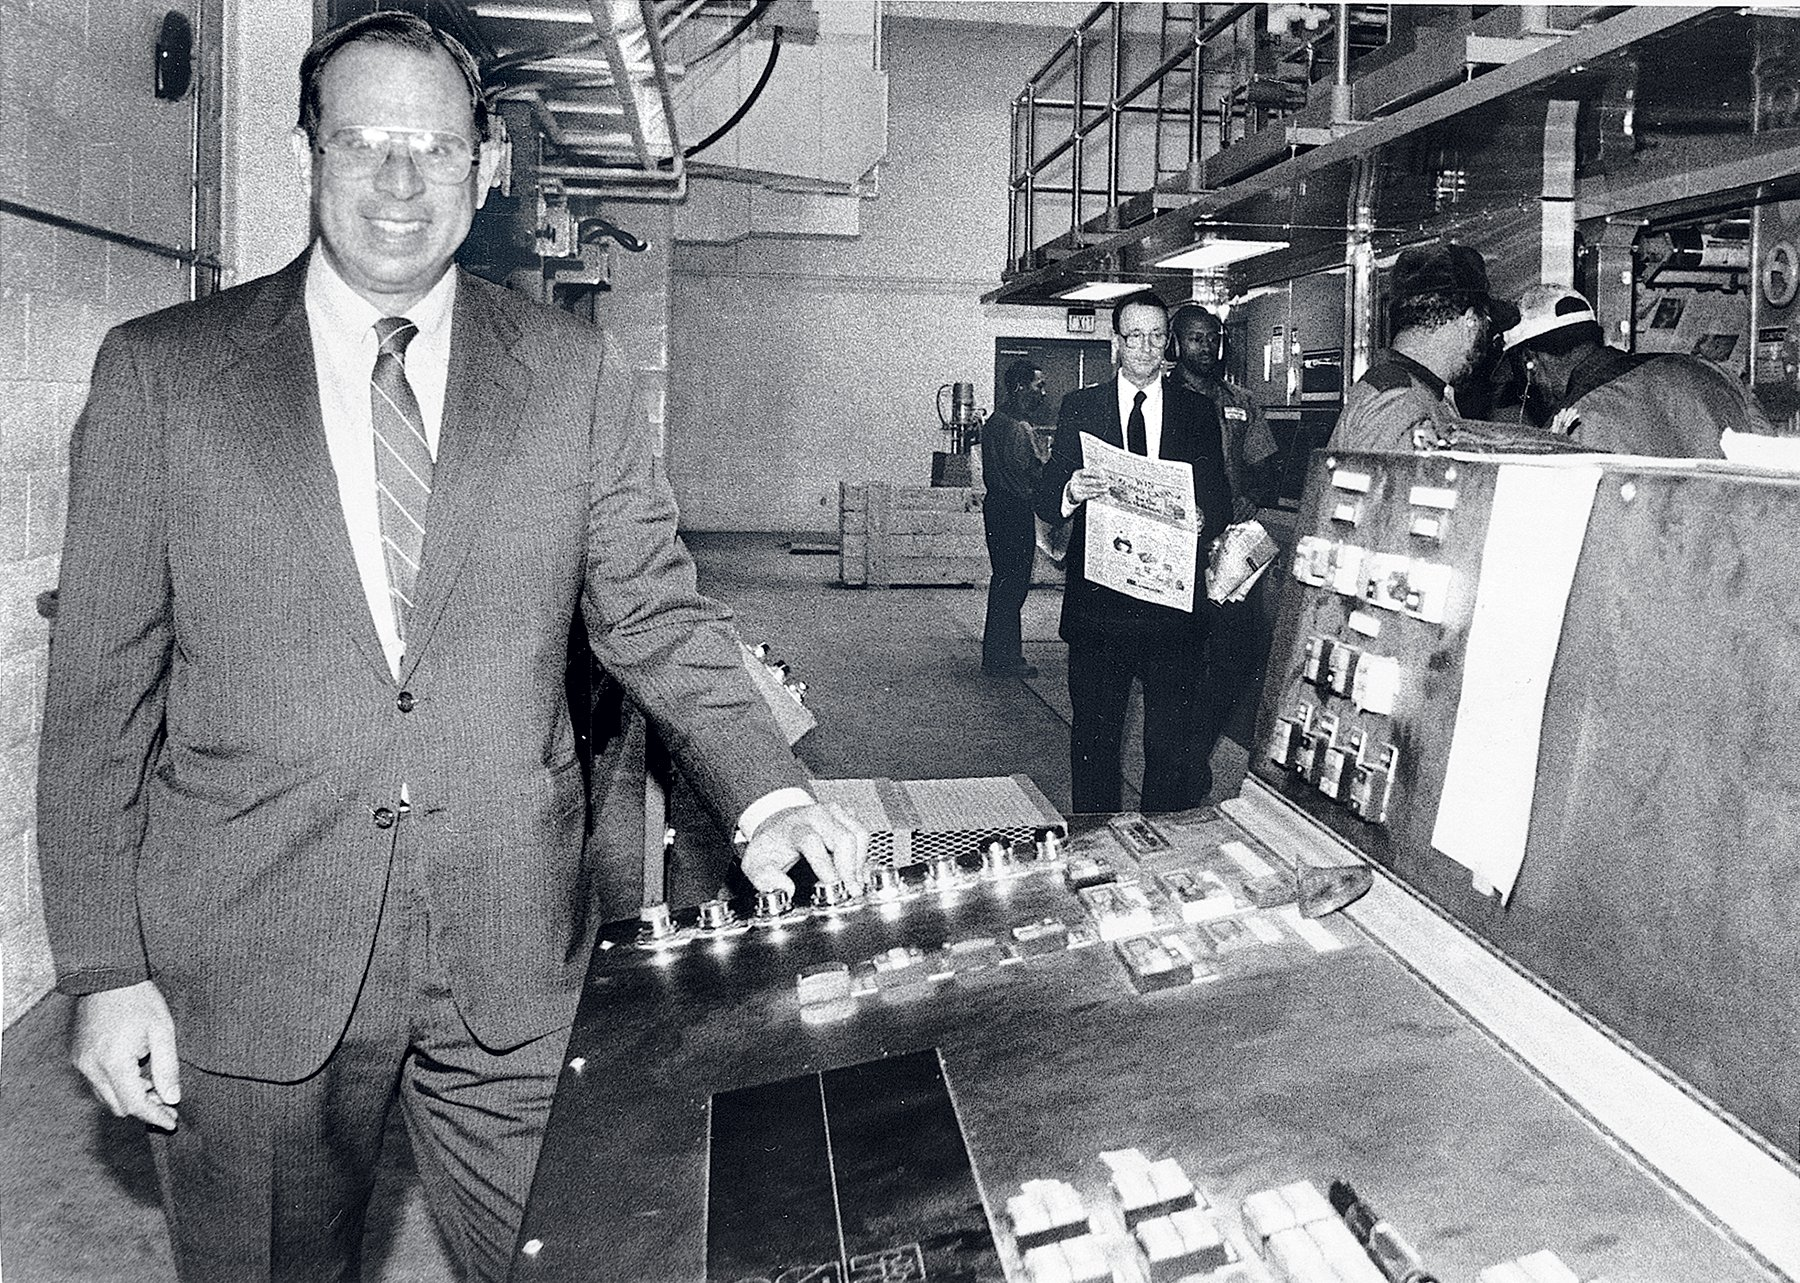 The author's father, Phil Merrill, starts the presses in the 1980s. Photograph courtesy of Catherine Merrill Williams.